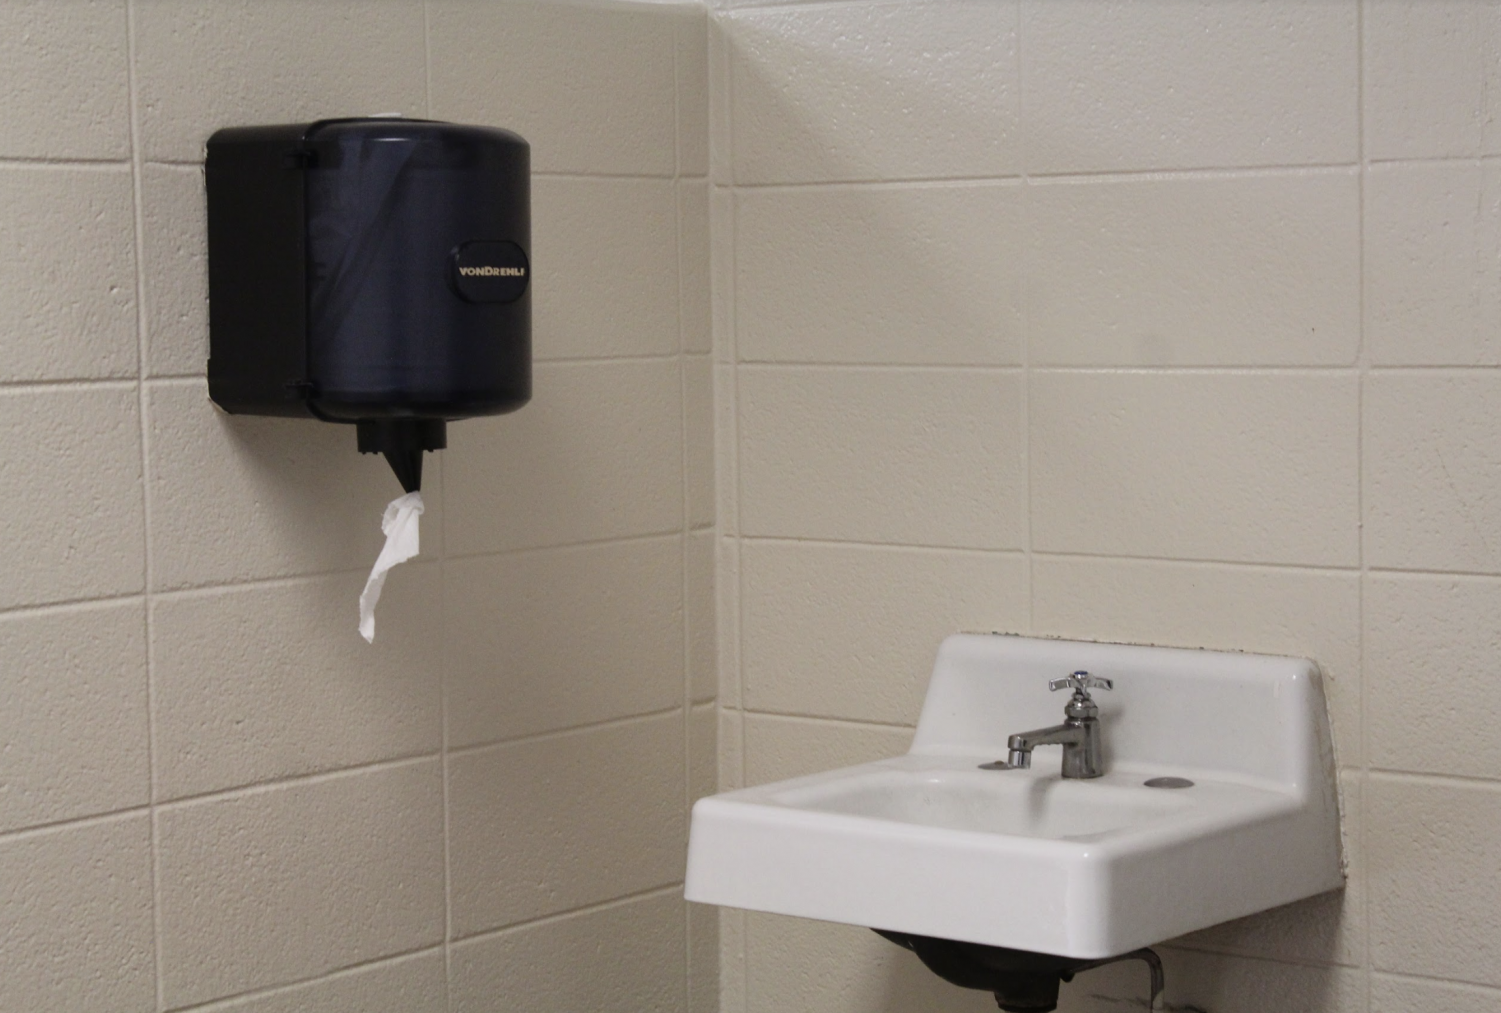 NC plans to commence construction this summer and finish before the 2019-2020 school year begins. With new hand sanitizer dispensers that will rid the buildings of large amounts of paper towel supply, the school will save thousands on water expenses and paper towel orders, leaving more money to fund other projects at NC, like football.